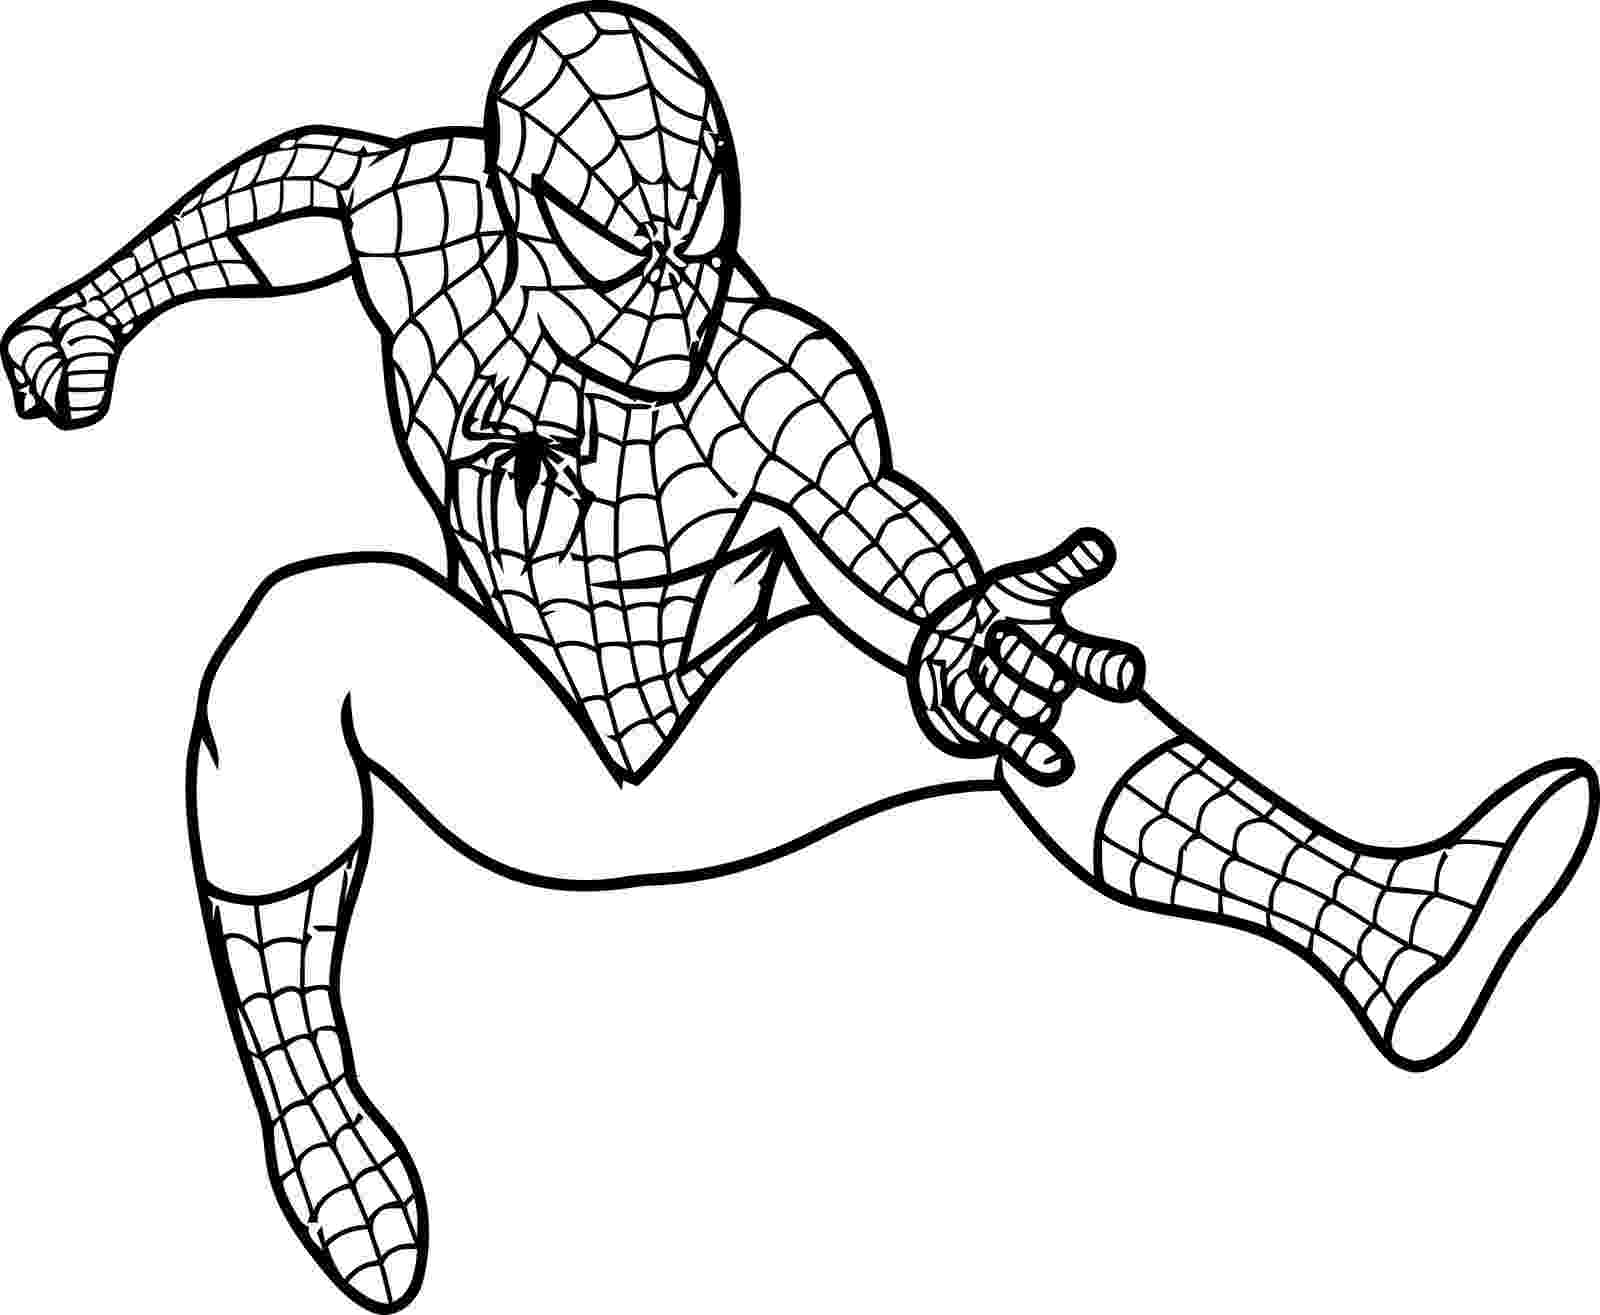 spiderman picture to color coloring pictures of spiderman coloring pages spiderman picture to color